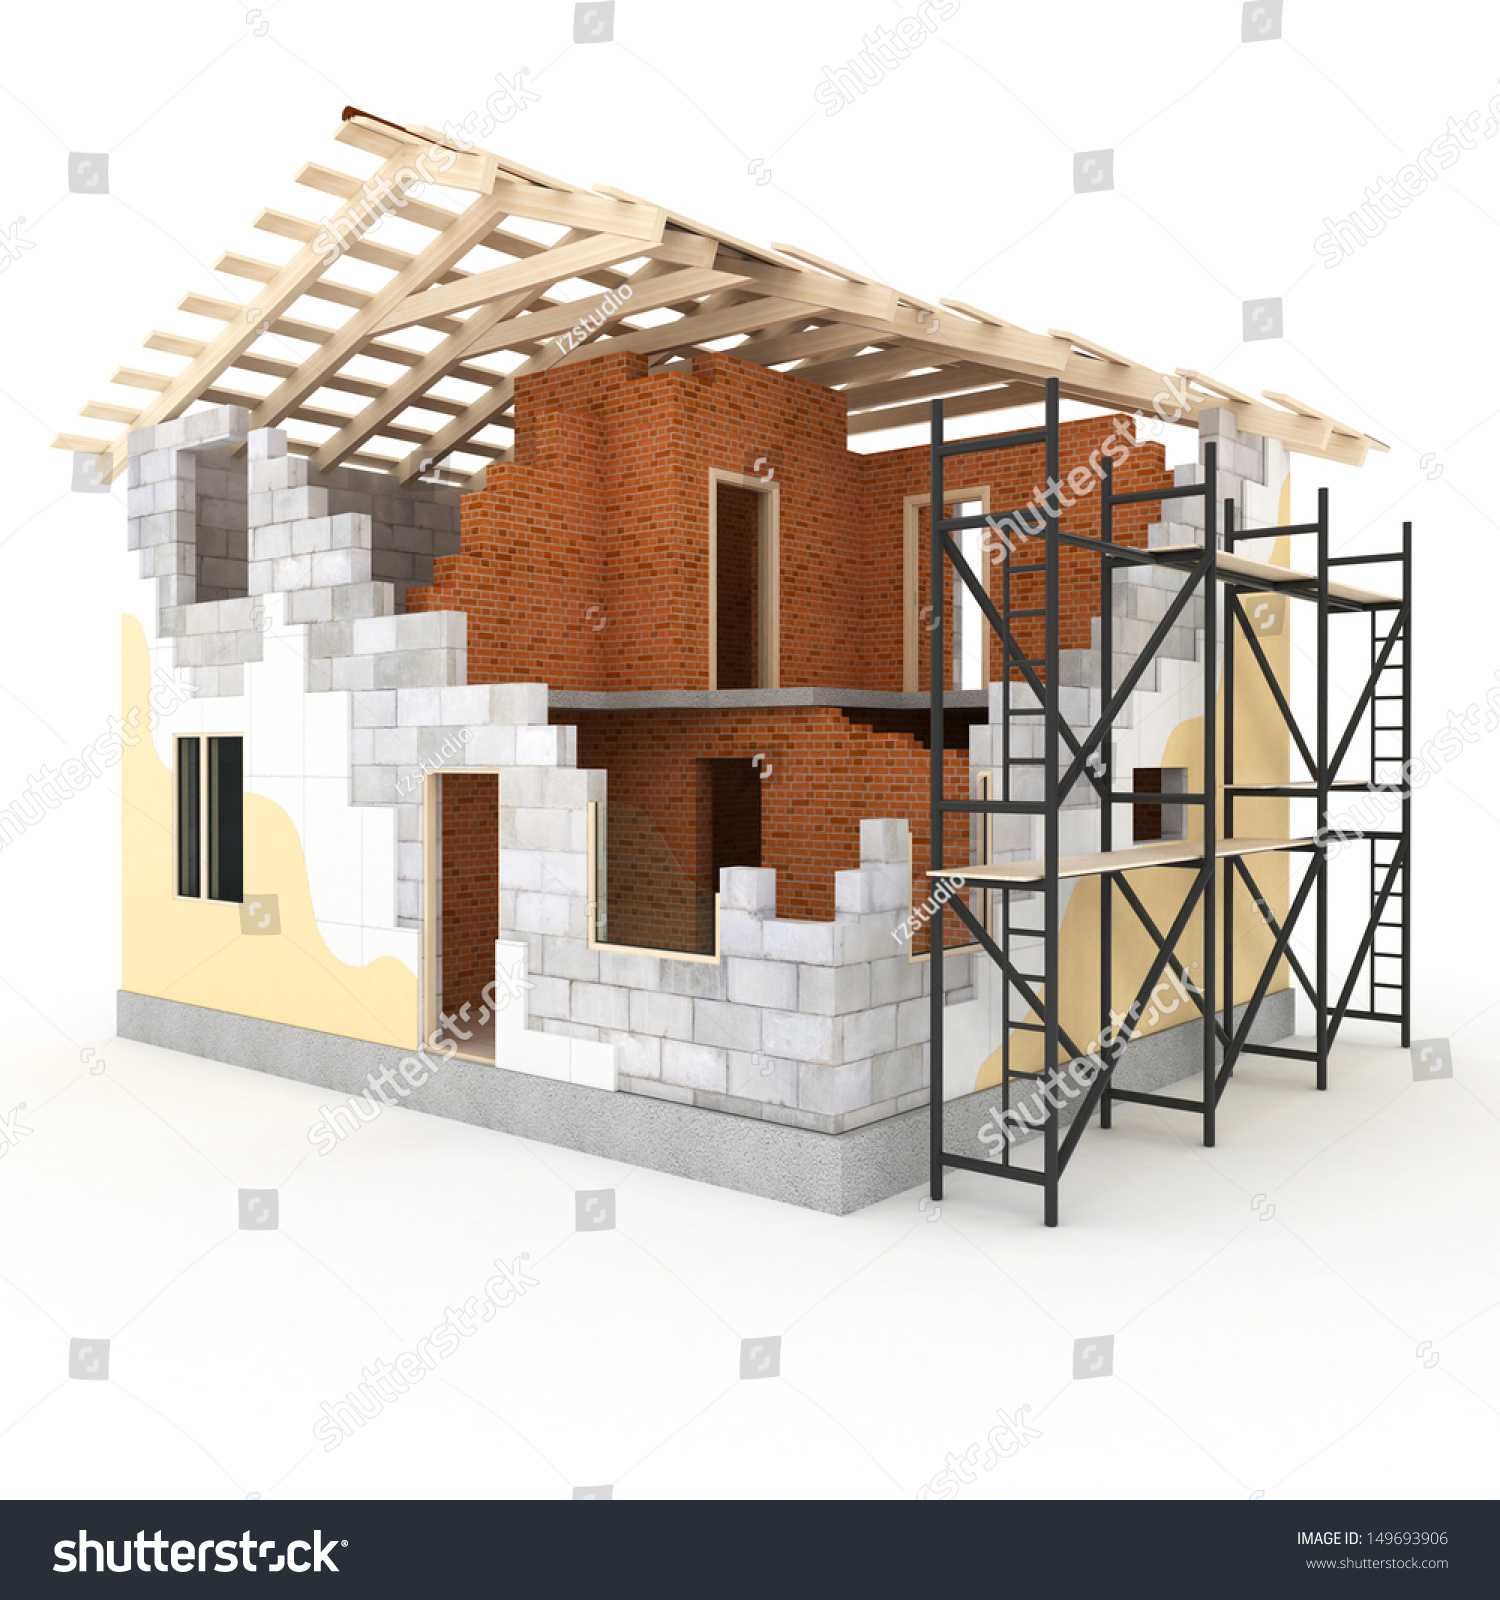 Picture Book Illustration Making An Architectural Model: Architecture Model House Showing Building Structure Stock